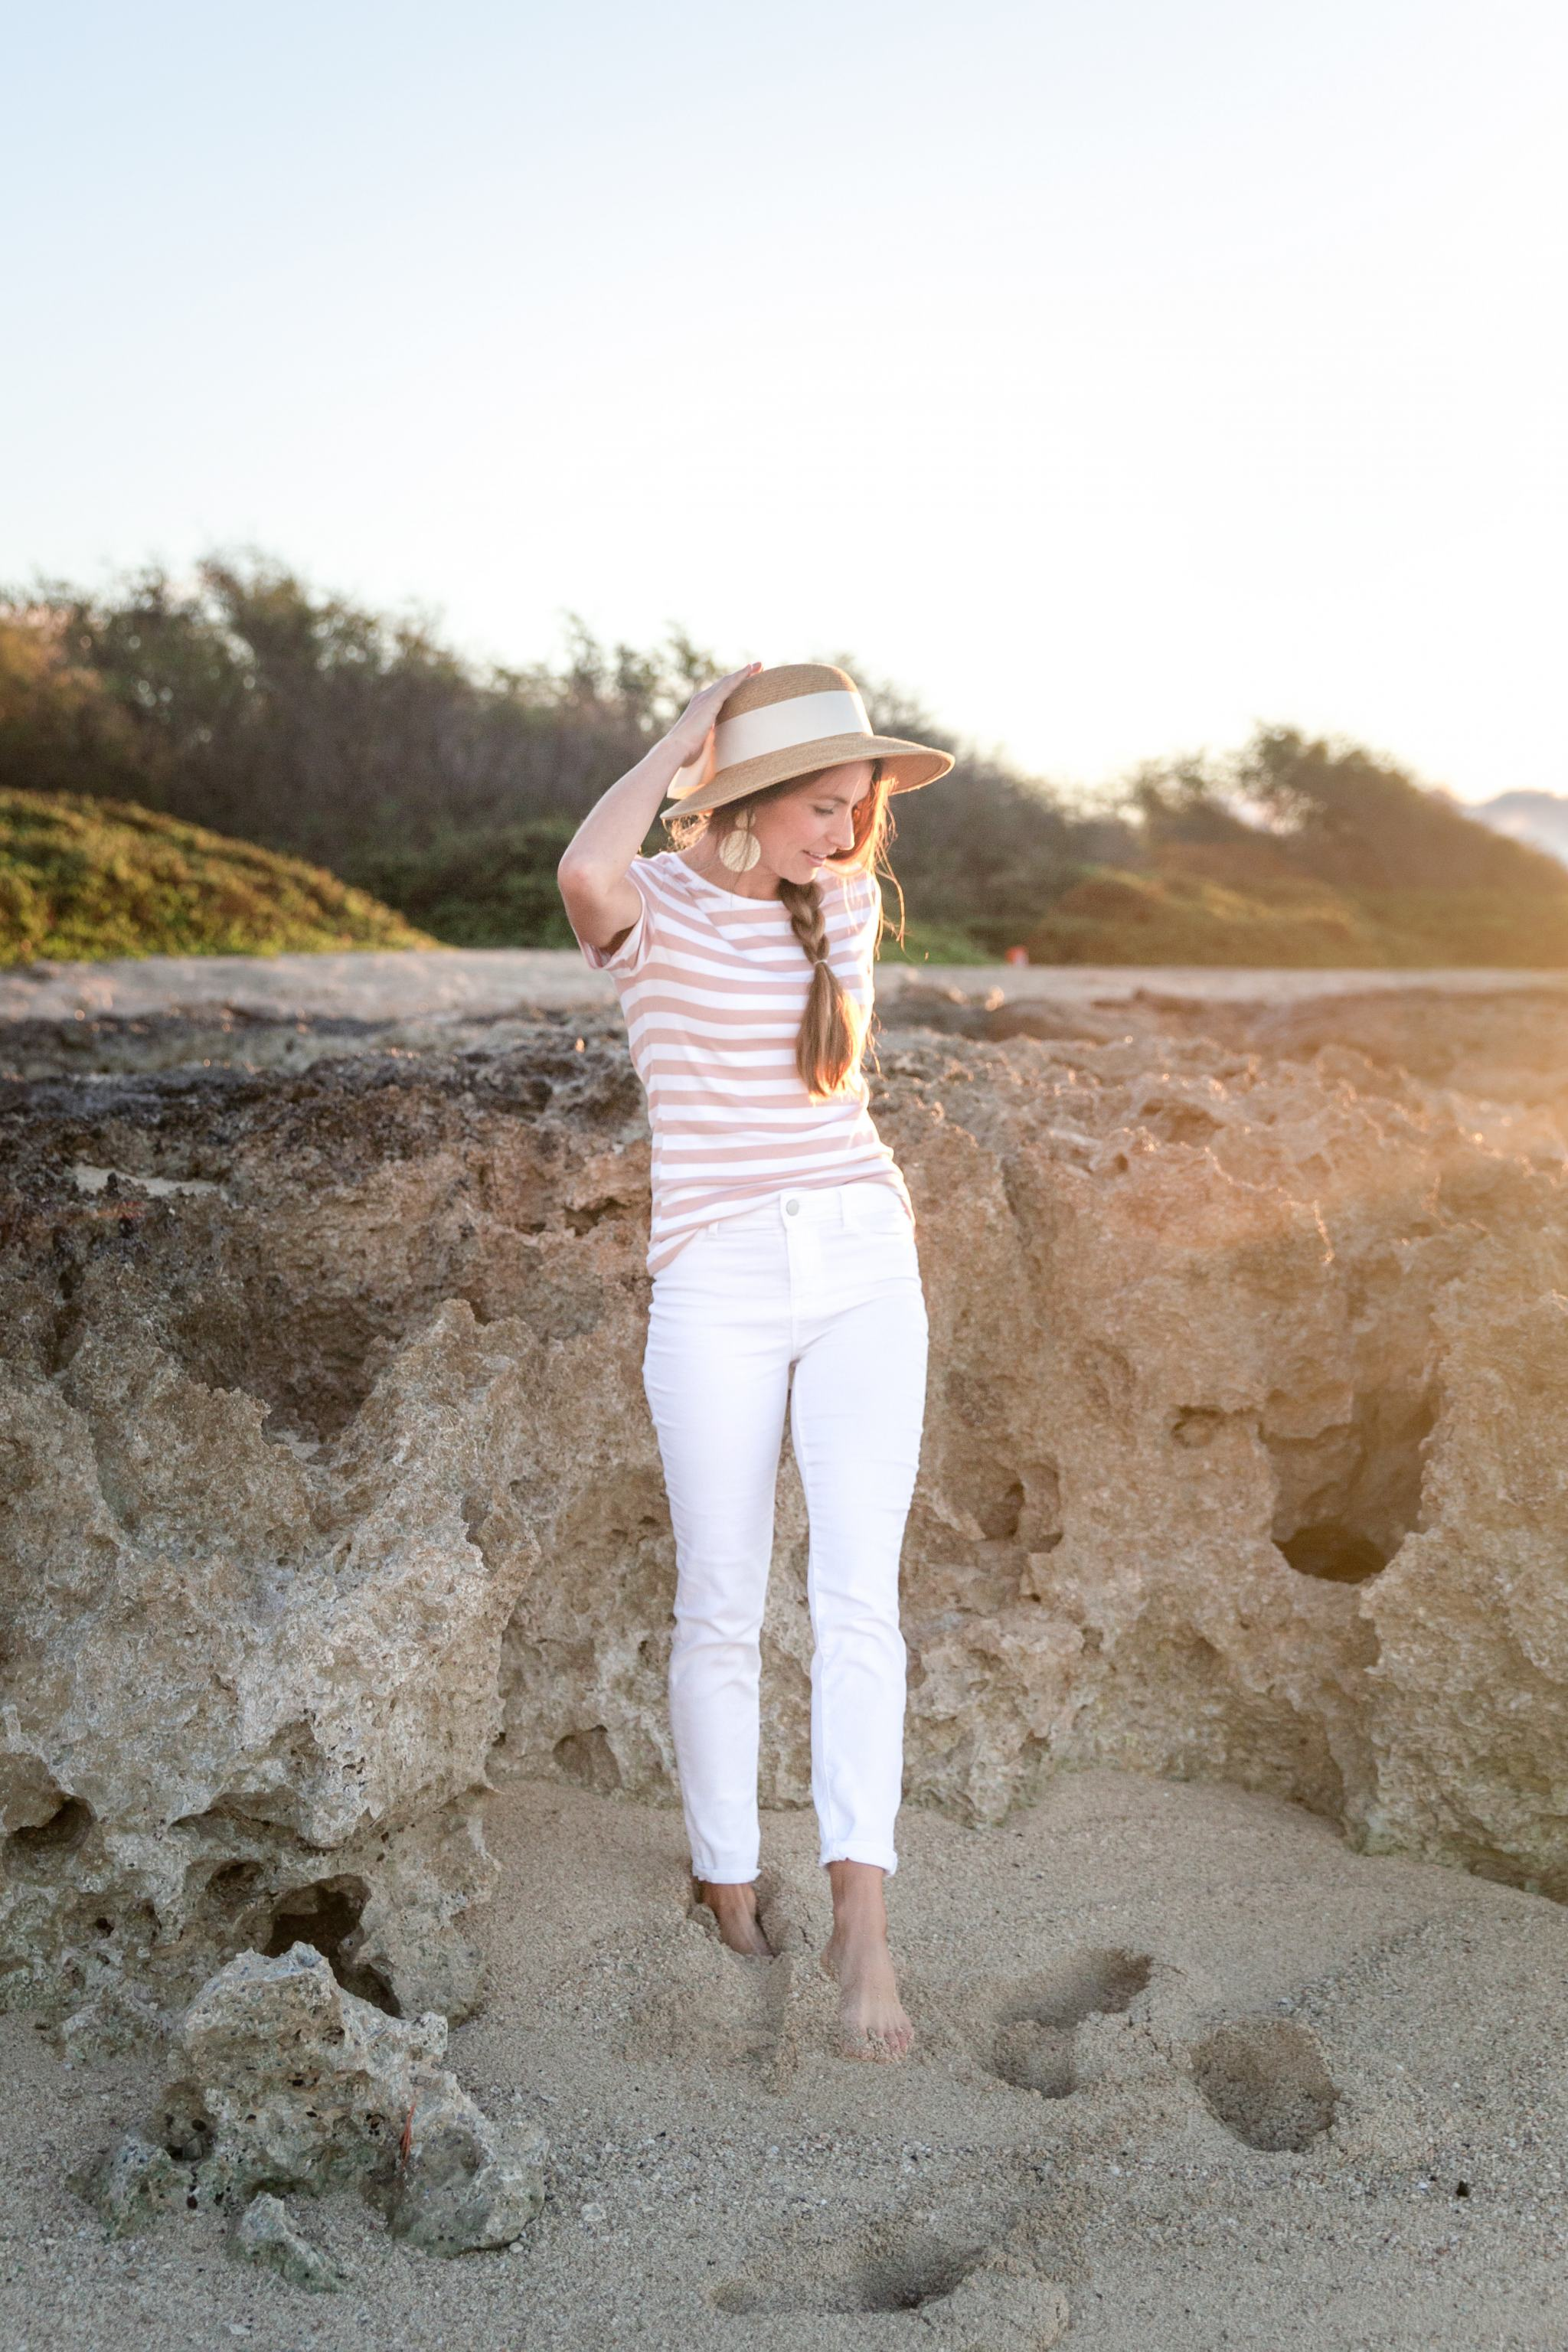 blush striped shirt - white denim pants - white pants - White Plains beach - rattan earrings - wicker earrings - woven earrings - sun hat with bow - bow sun hat - target striped shirt - Hawaii sunrise - spring fashion - spring outfit ideas - spring style - summer style - walmart white jeans - tuckernuck straw hat - amazon earrings - affordable style